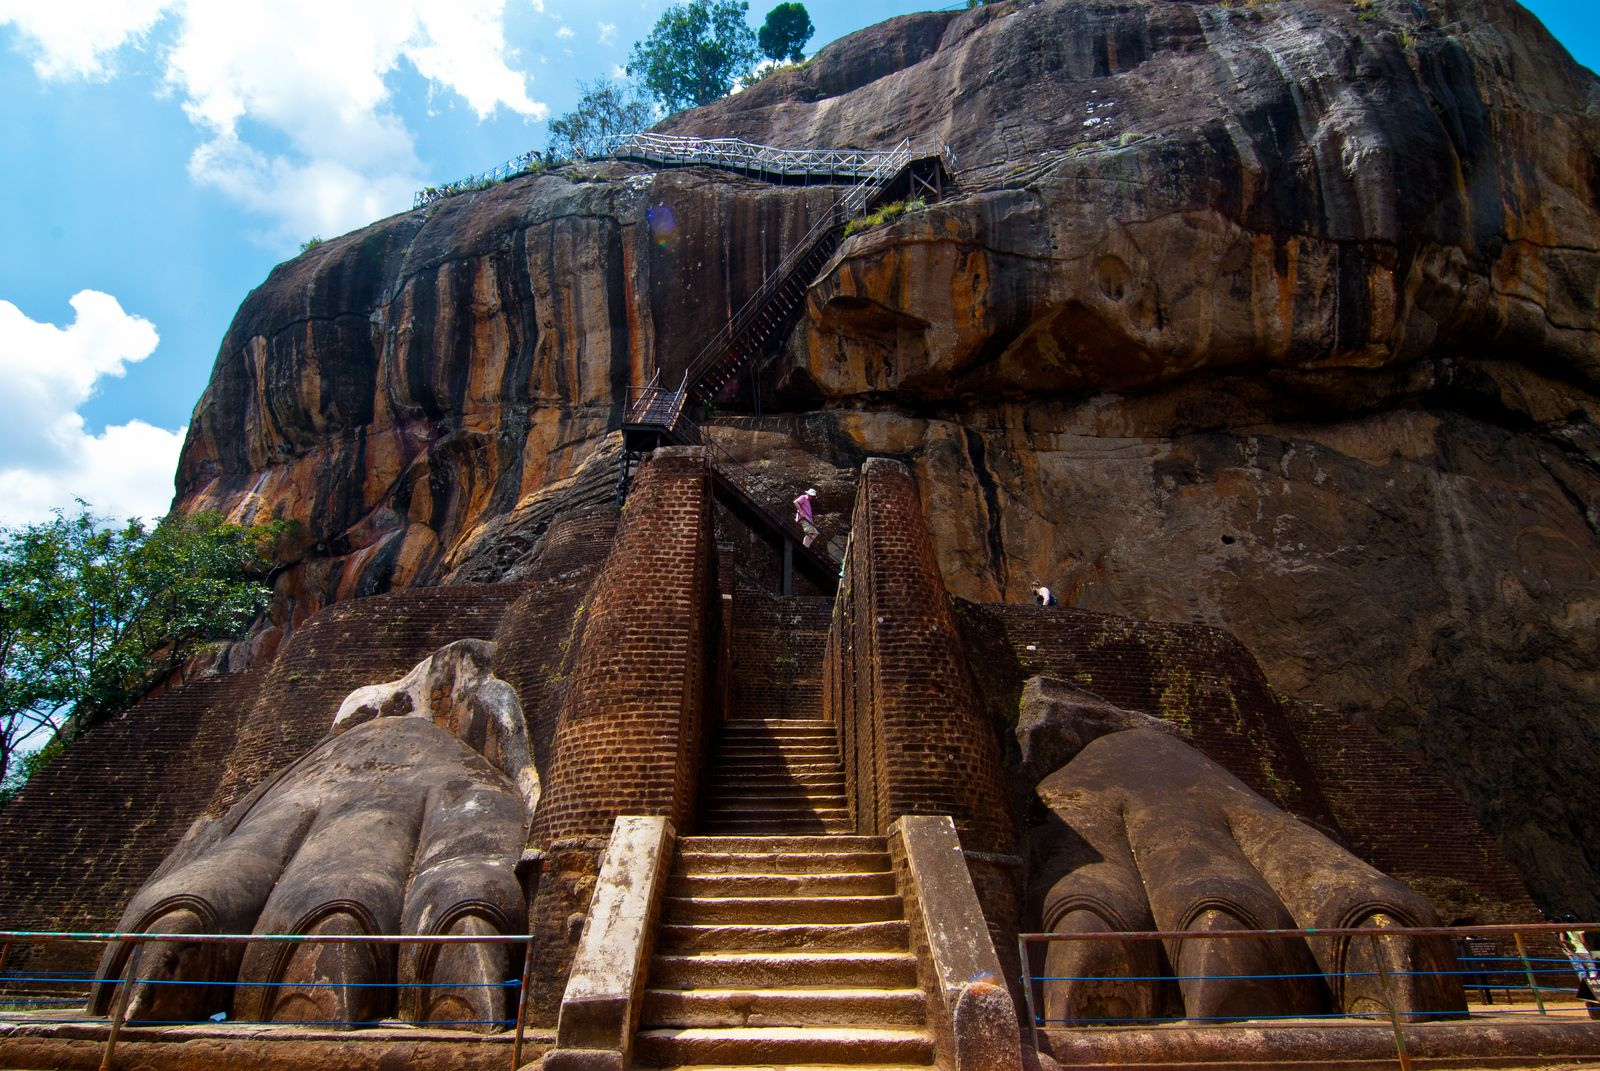 Sigiriya Sri Lanka  city photos gallery : Visiting Sigiriya, Sri Lanka | Blog.AsianInNY.com